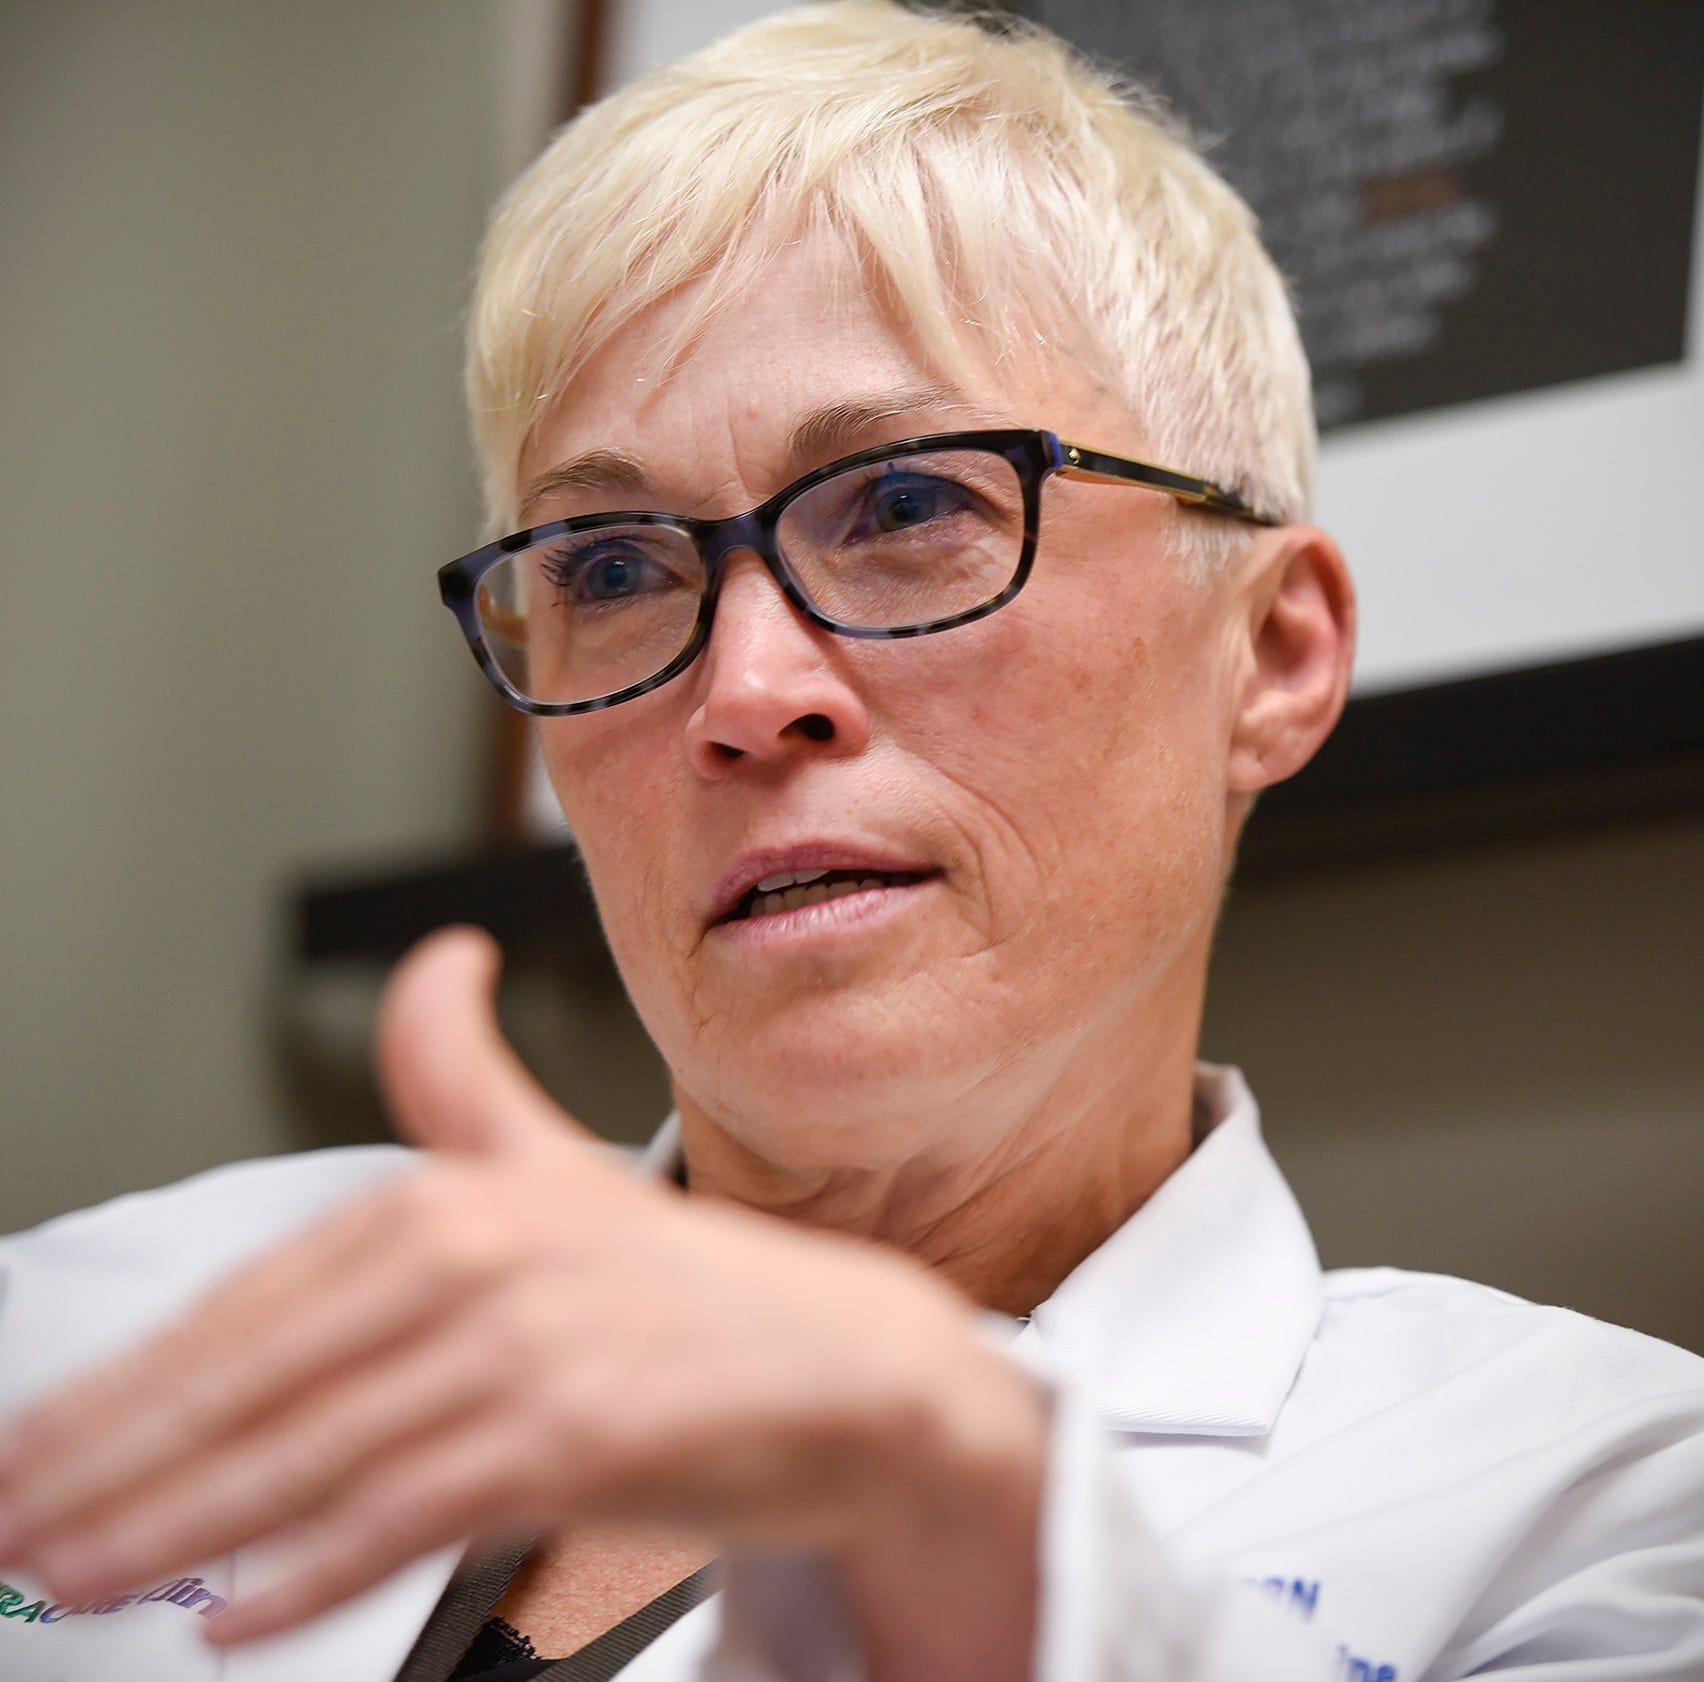 After only 18 months, gender clinic adds surgical, pediatric services for LGBTQ people